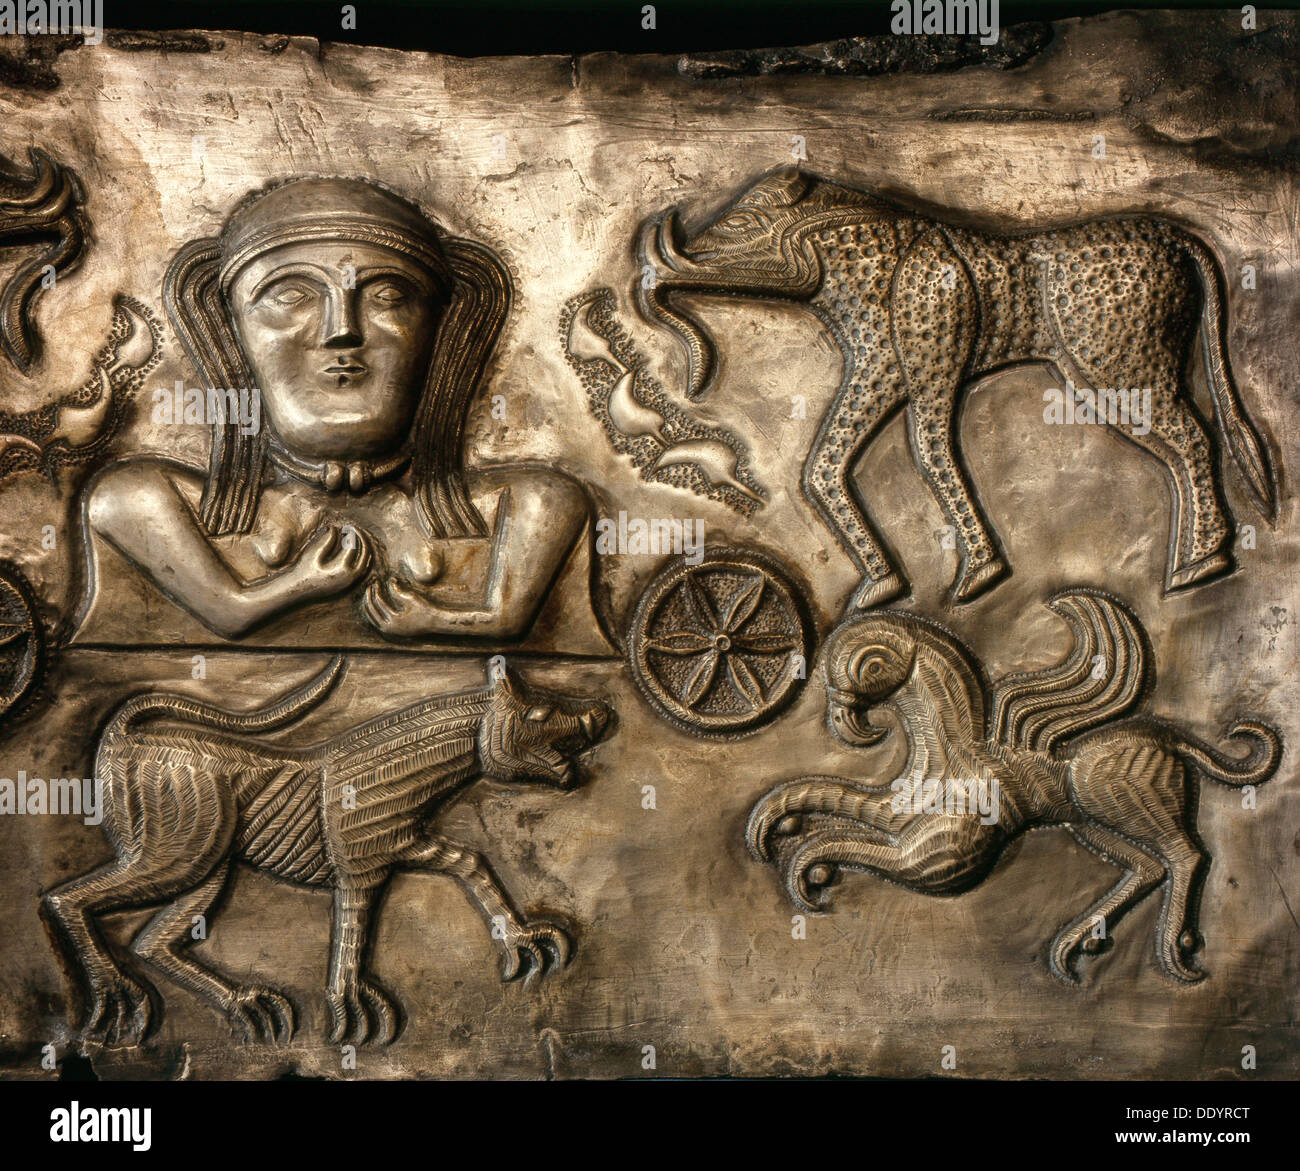 Panel of the Gundestrup cauldron, 2nd or 1st century BC. Artist: Werner Forman - Stock Image